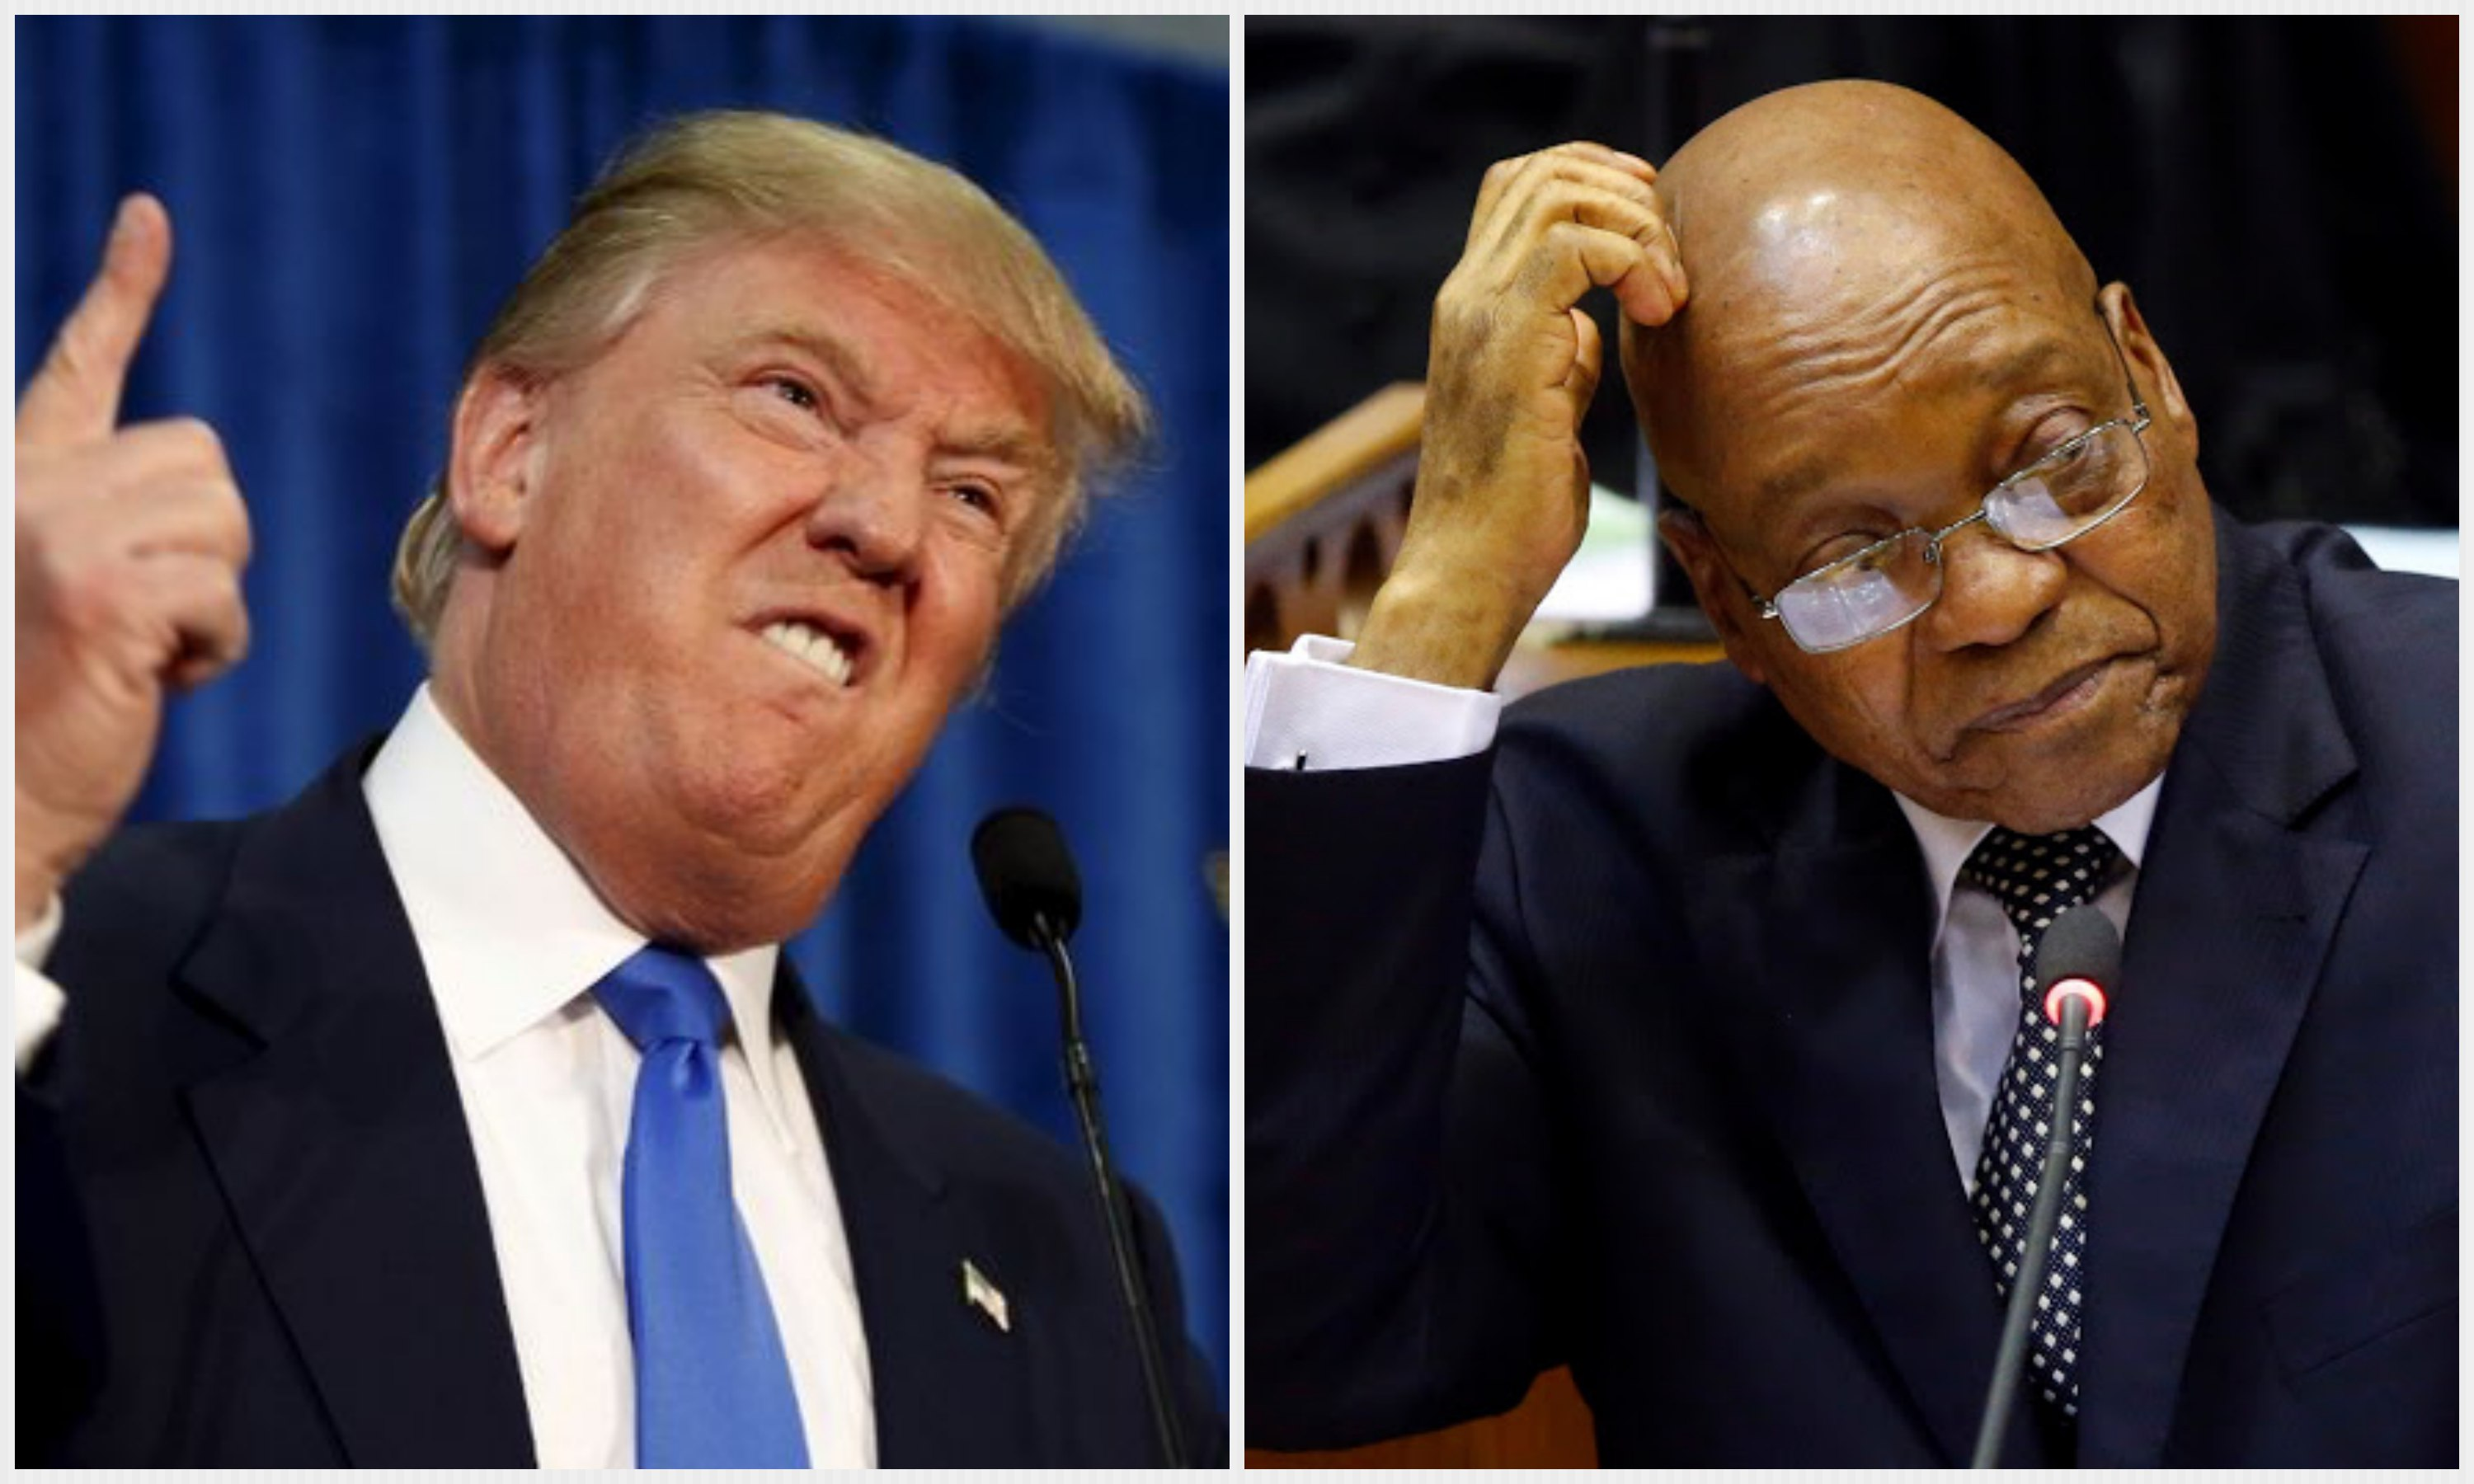 African Nations Up in Arms Over Trump's 'Shithole' Remark